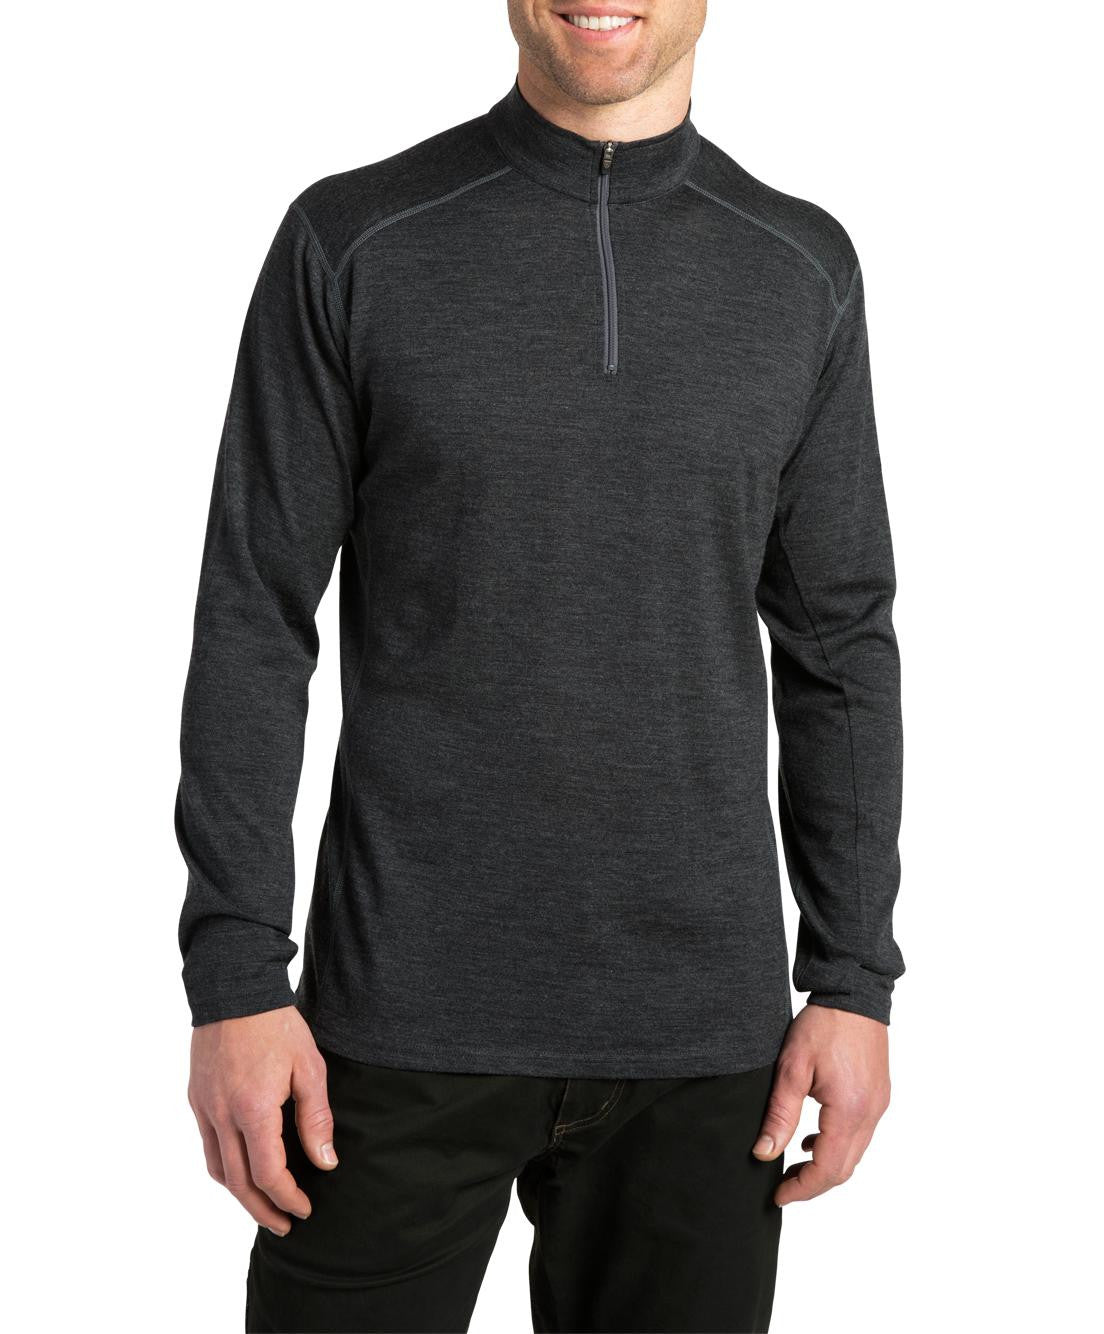 Kuhl Skar 1/4 Zip Sweater 3094